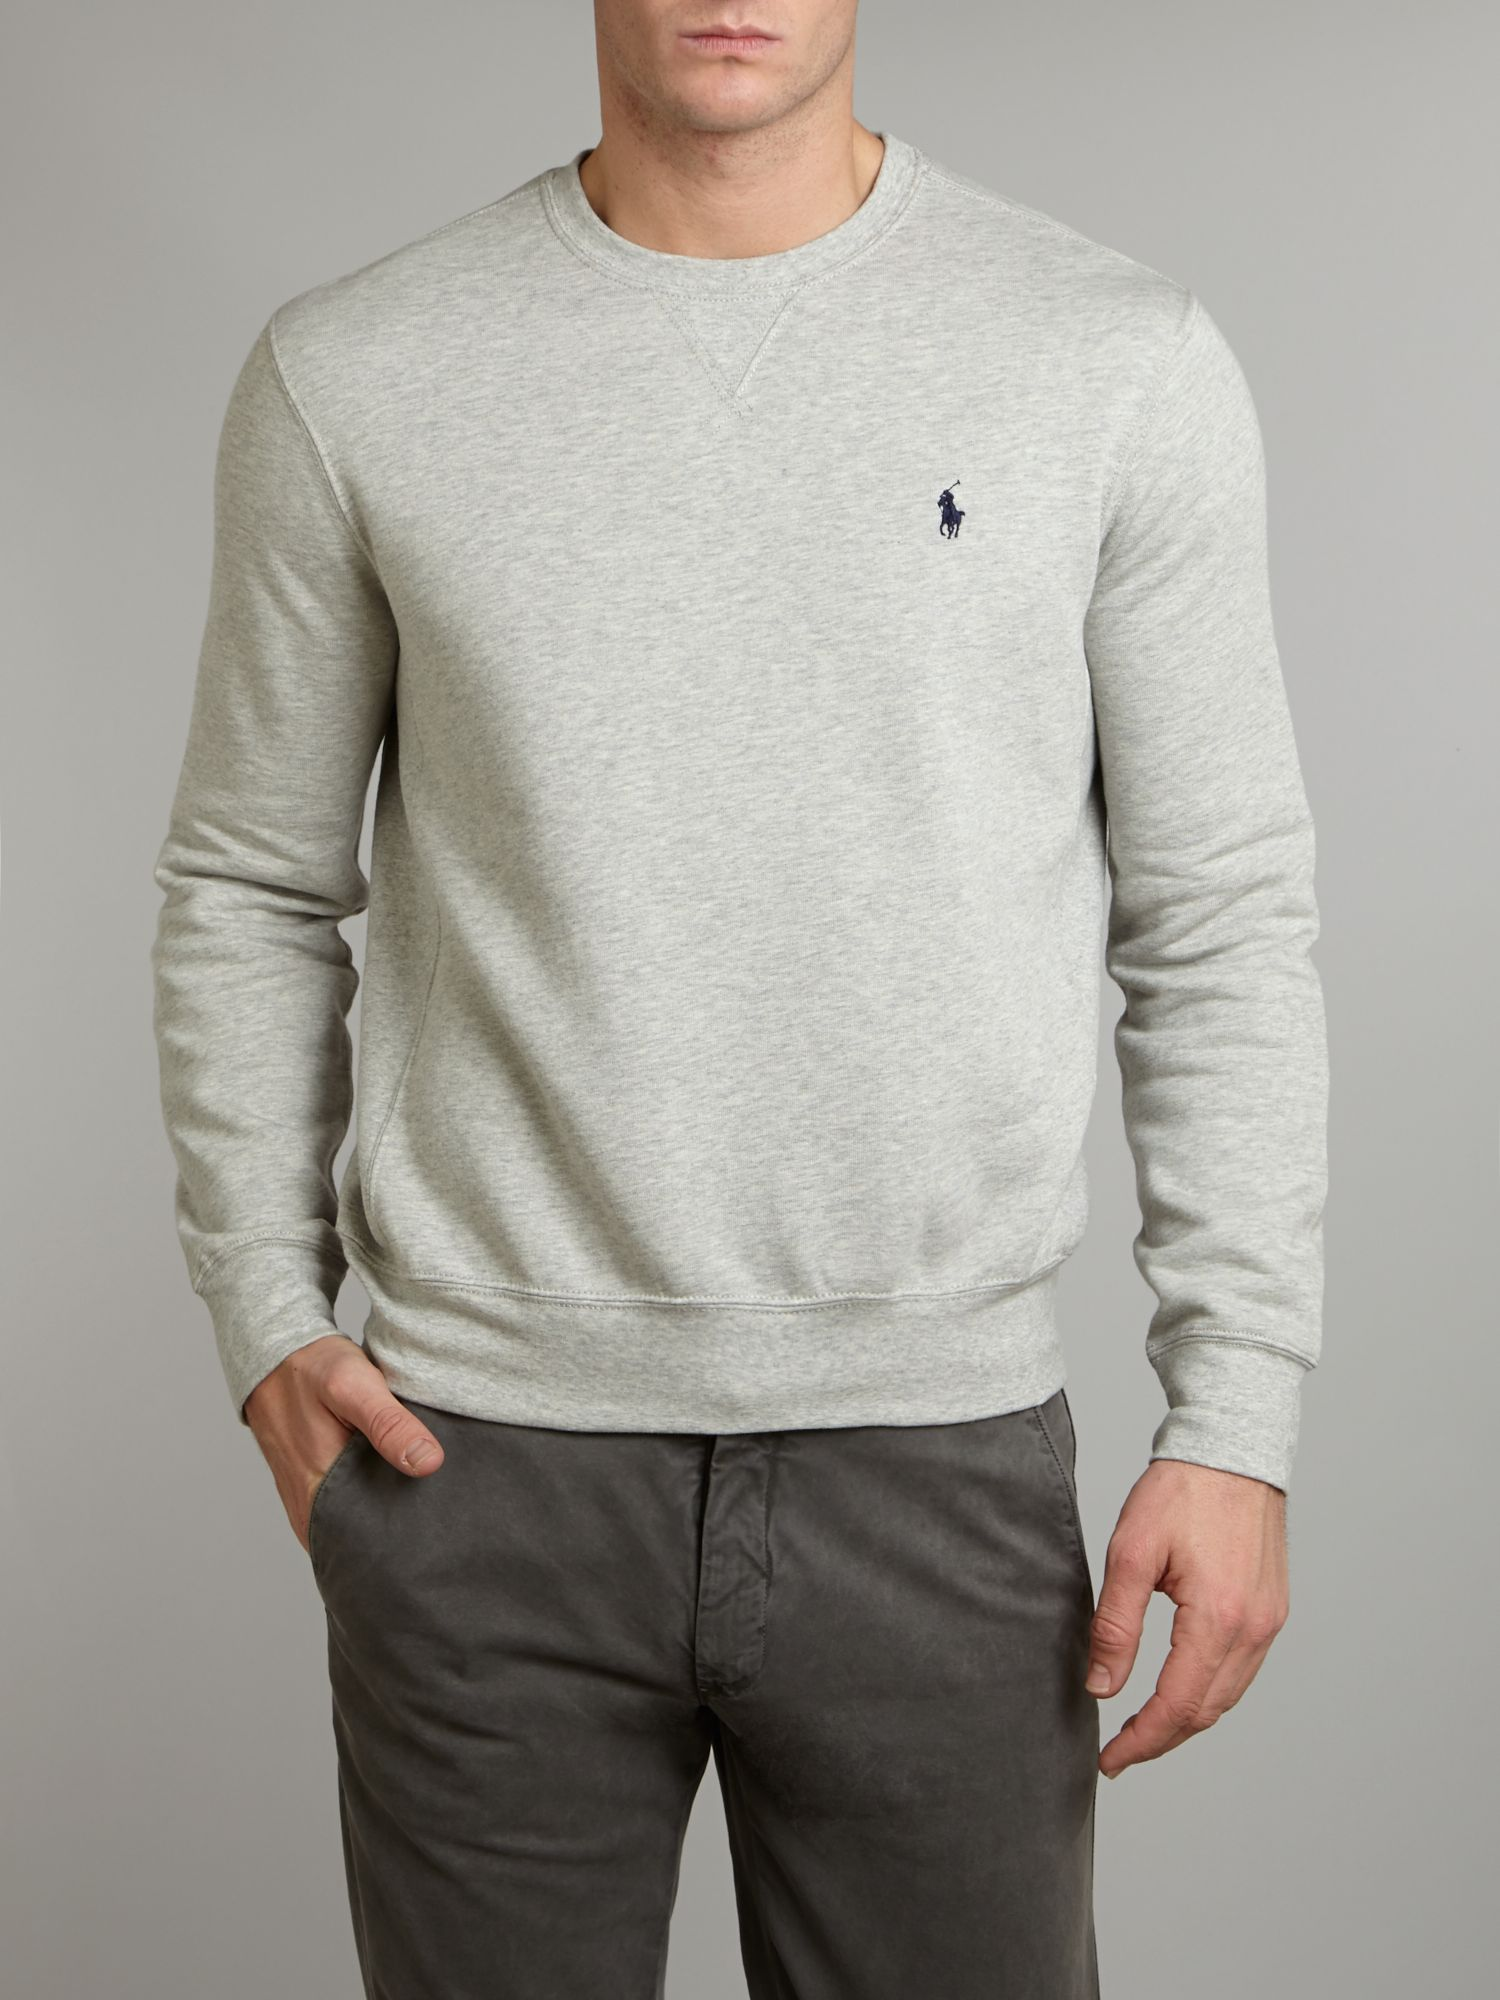 lyst polo ralph lauren classic crew neck sweater in gray. Black Bedroom Furniture Sets. Home Design Ideas